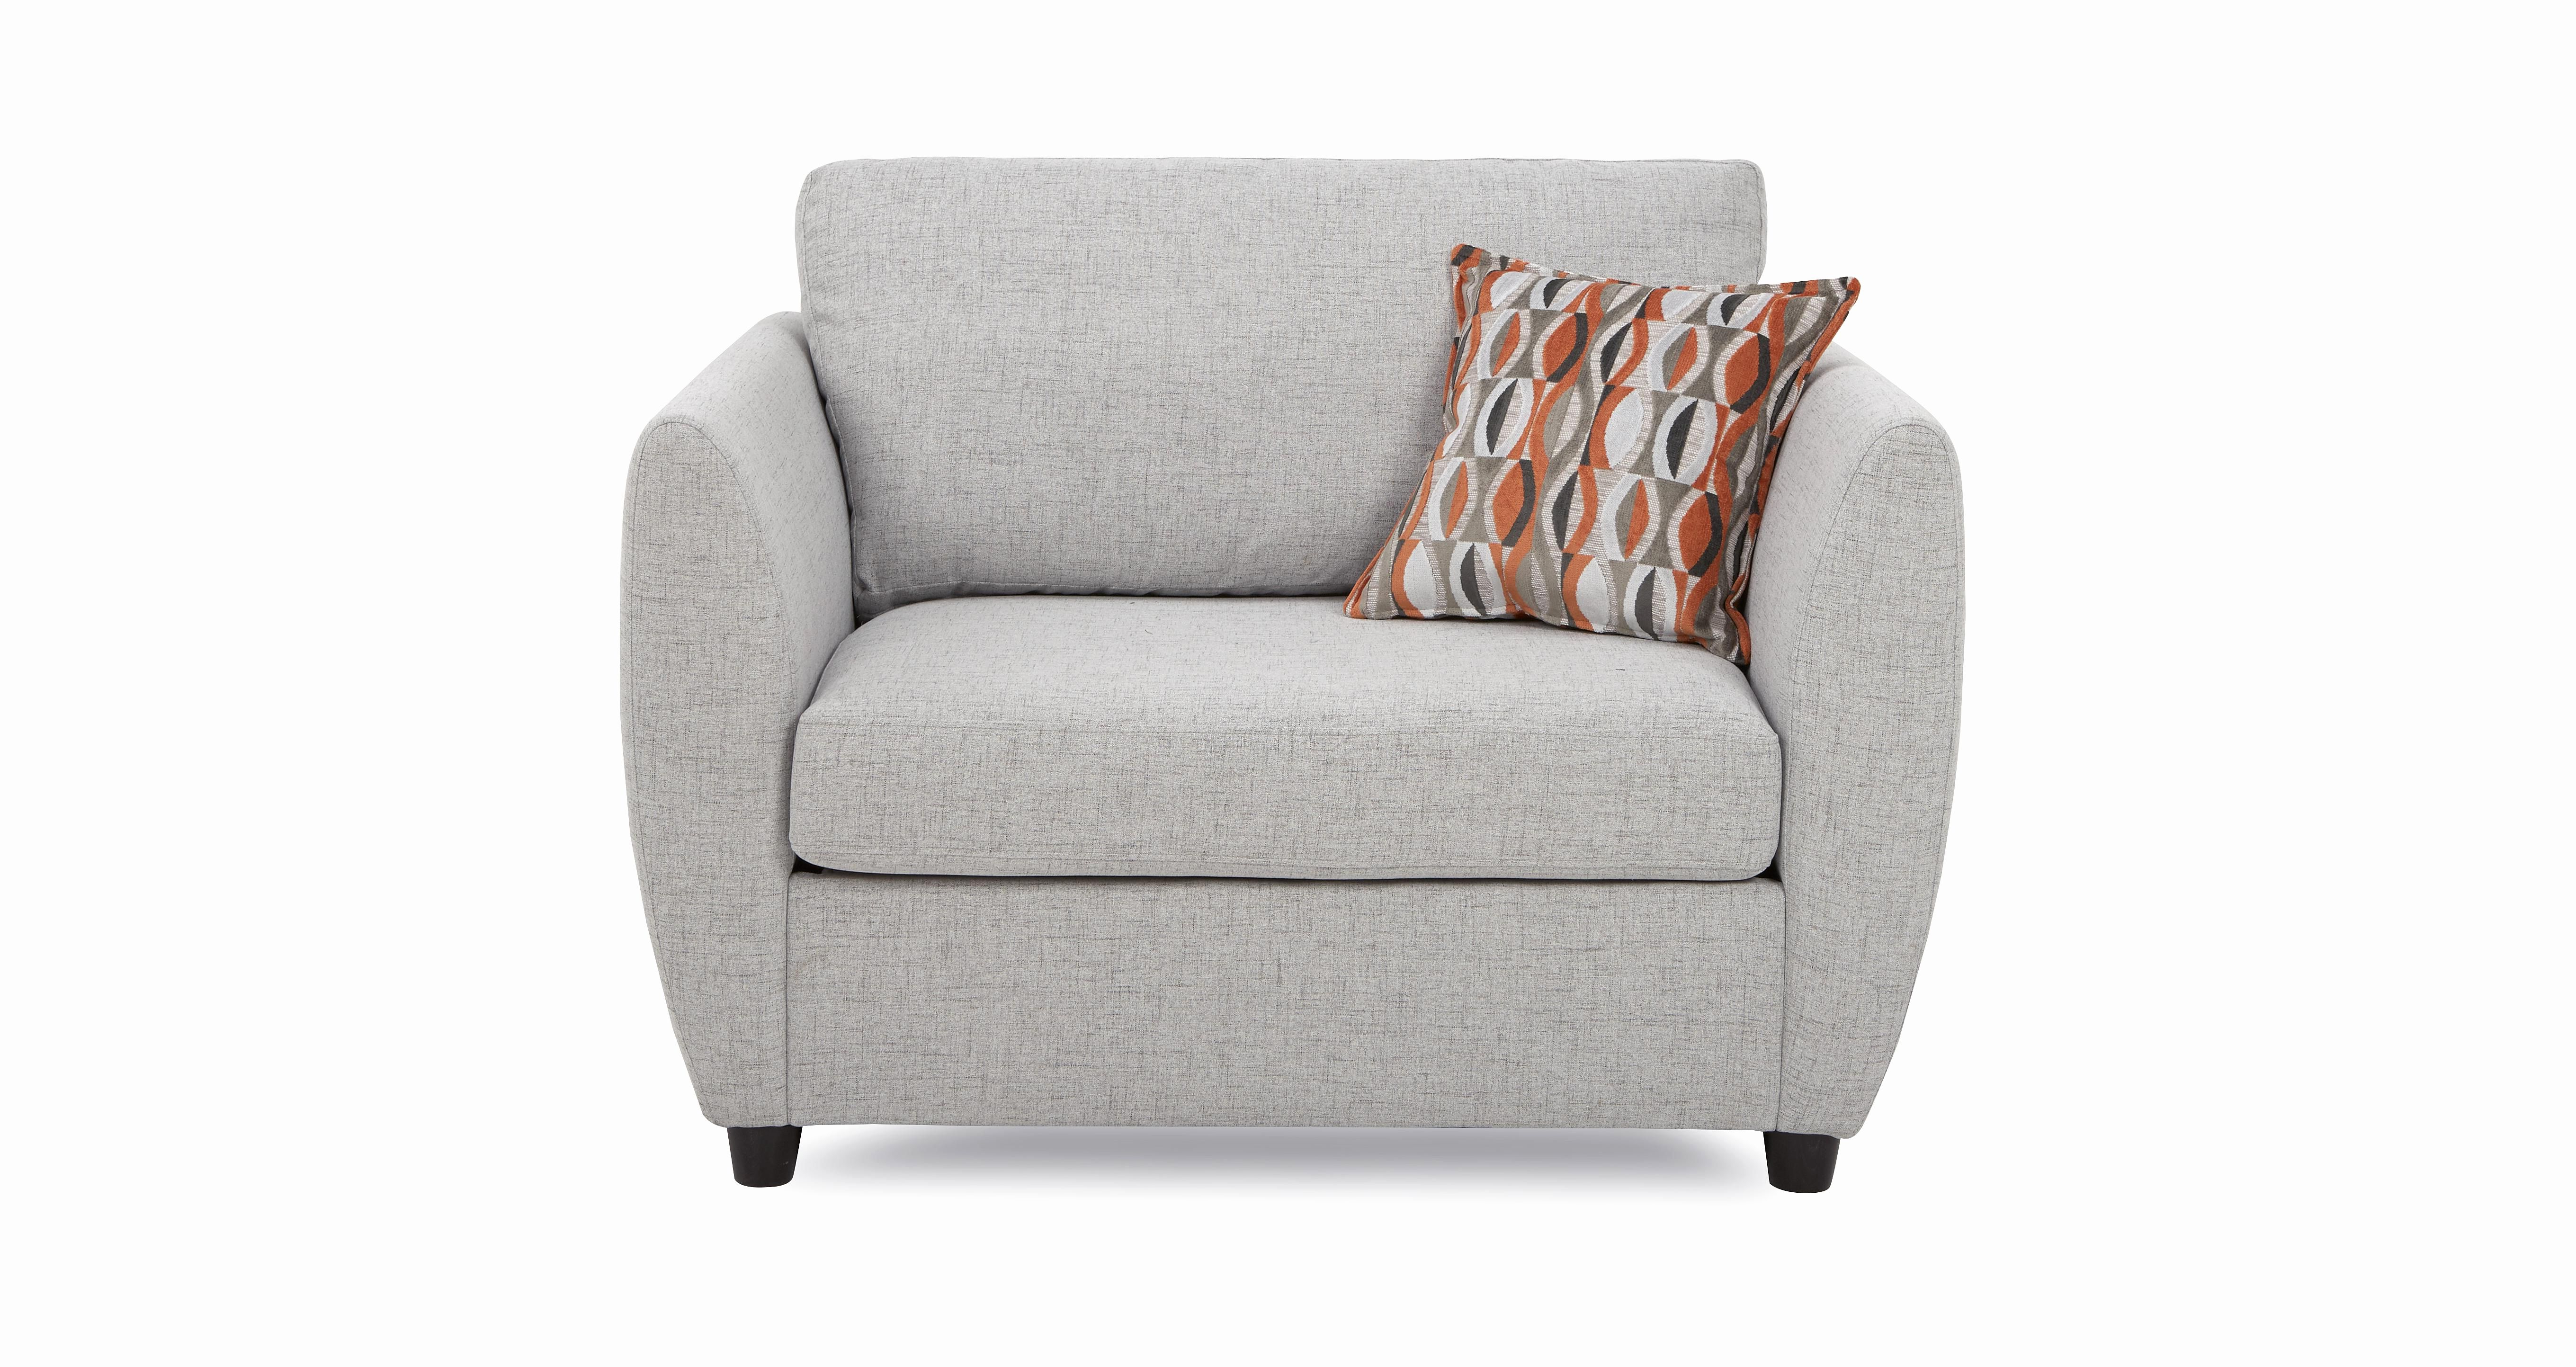 Single Sofa Bed Chairs Regarding Most Up To Date Beautiful Sofa Chairs For Bedroom Shot Sofa Chairs For Bedroom (Gallery 10 of 20)